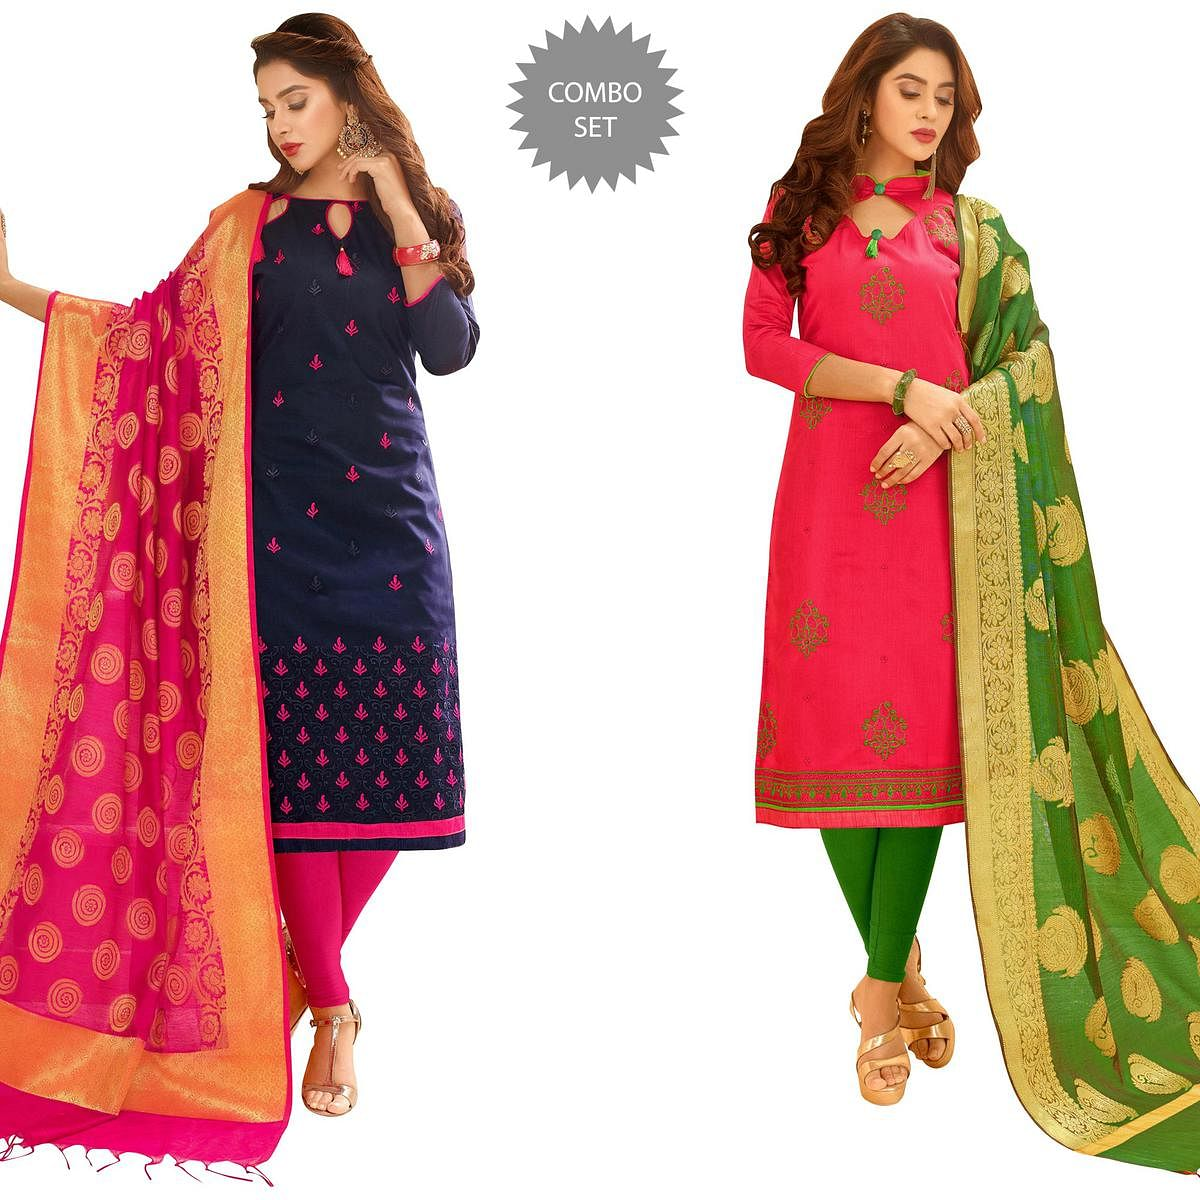 18feed8464 Buy Majestic Partywear Embroidered Cotton Suit With Pure Banarasi Silk  Dupatta - Pack of 2 for womens online India, Best Prices, Reviews -  Peachmode